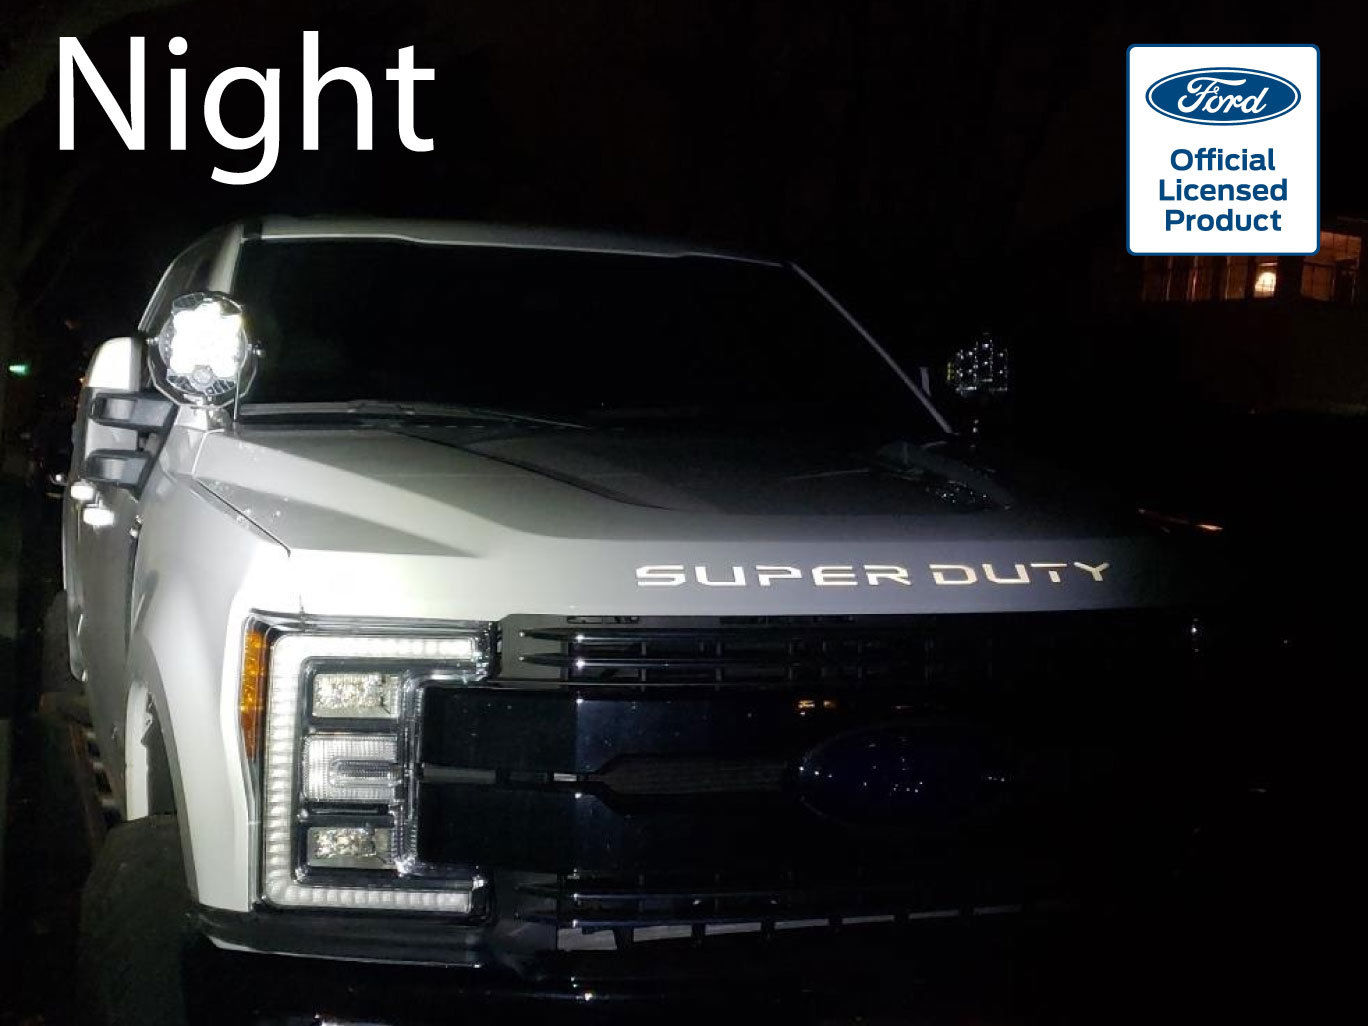 2017-19 Ford Super Duty Reflective Hood Letters Vinyl Decals Inserts F250 F350 – 2